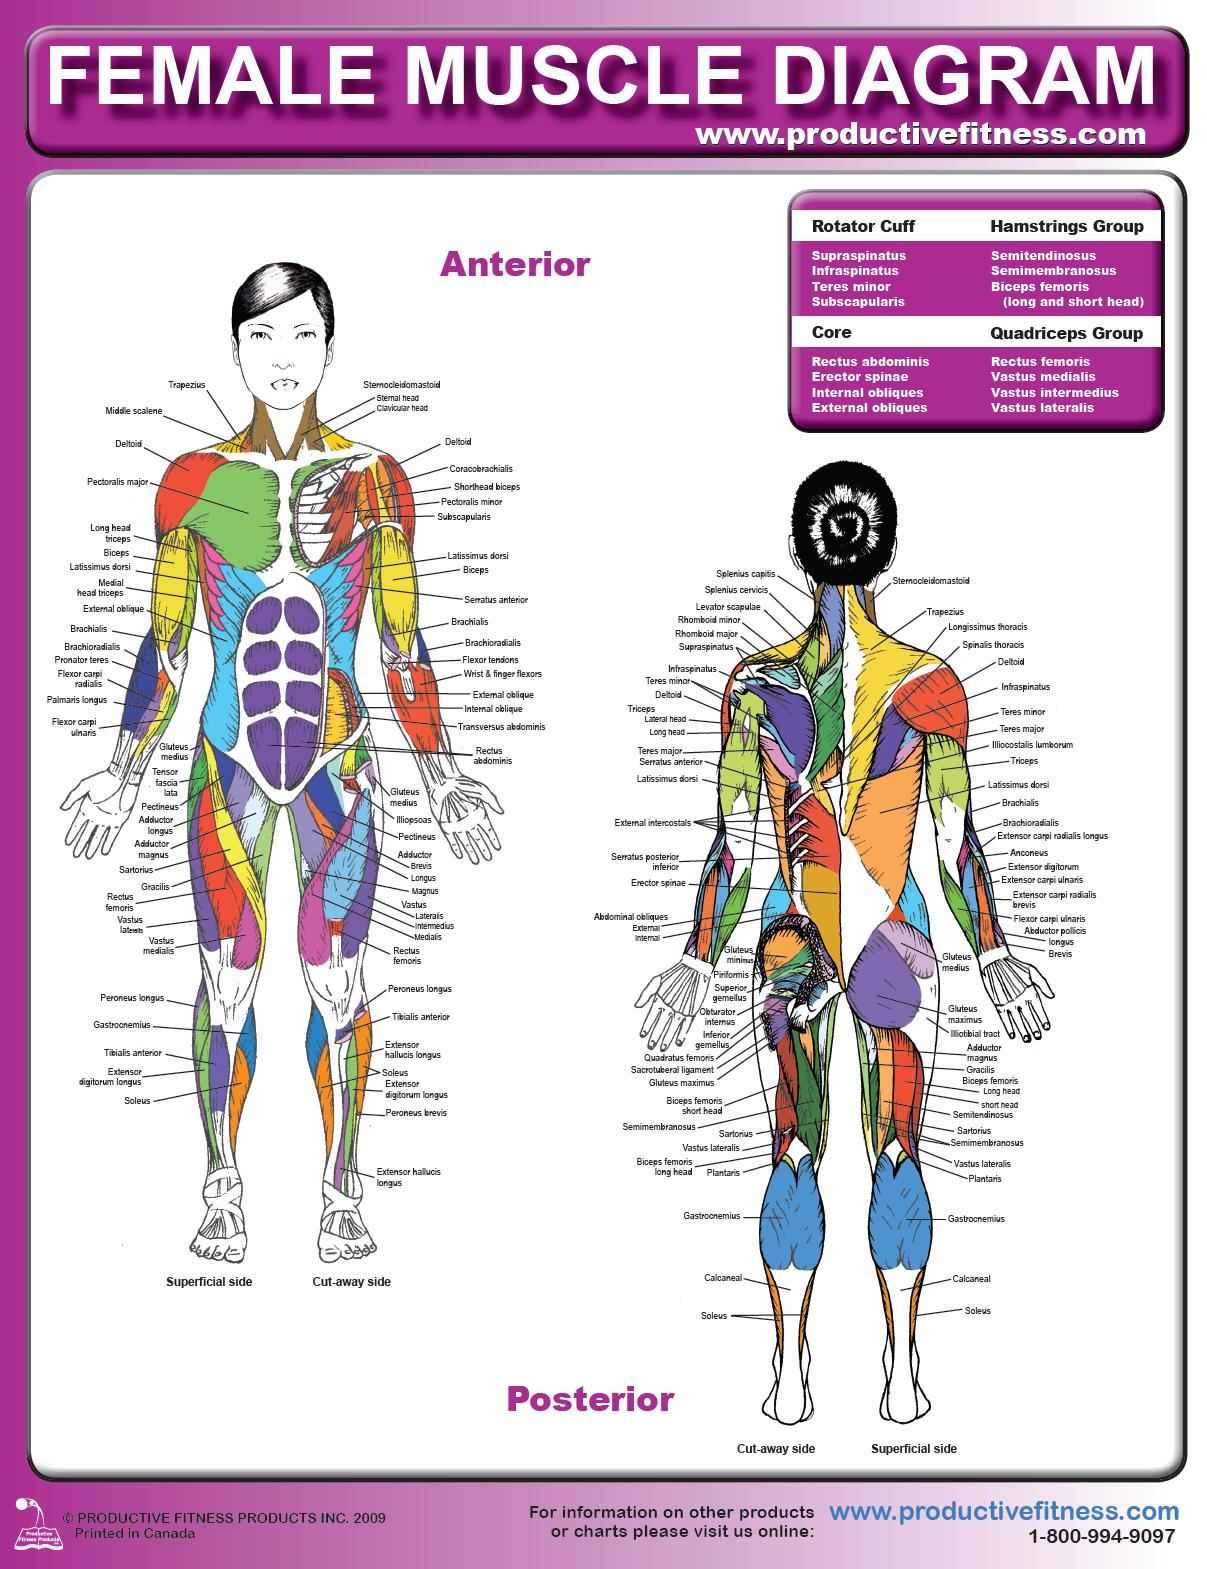 Female Muscle Diagram And Definitions